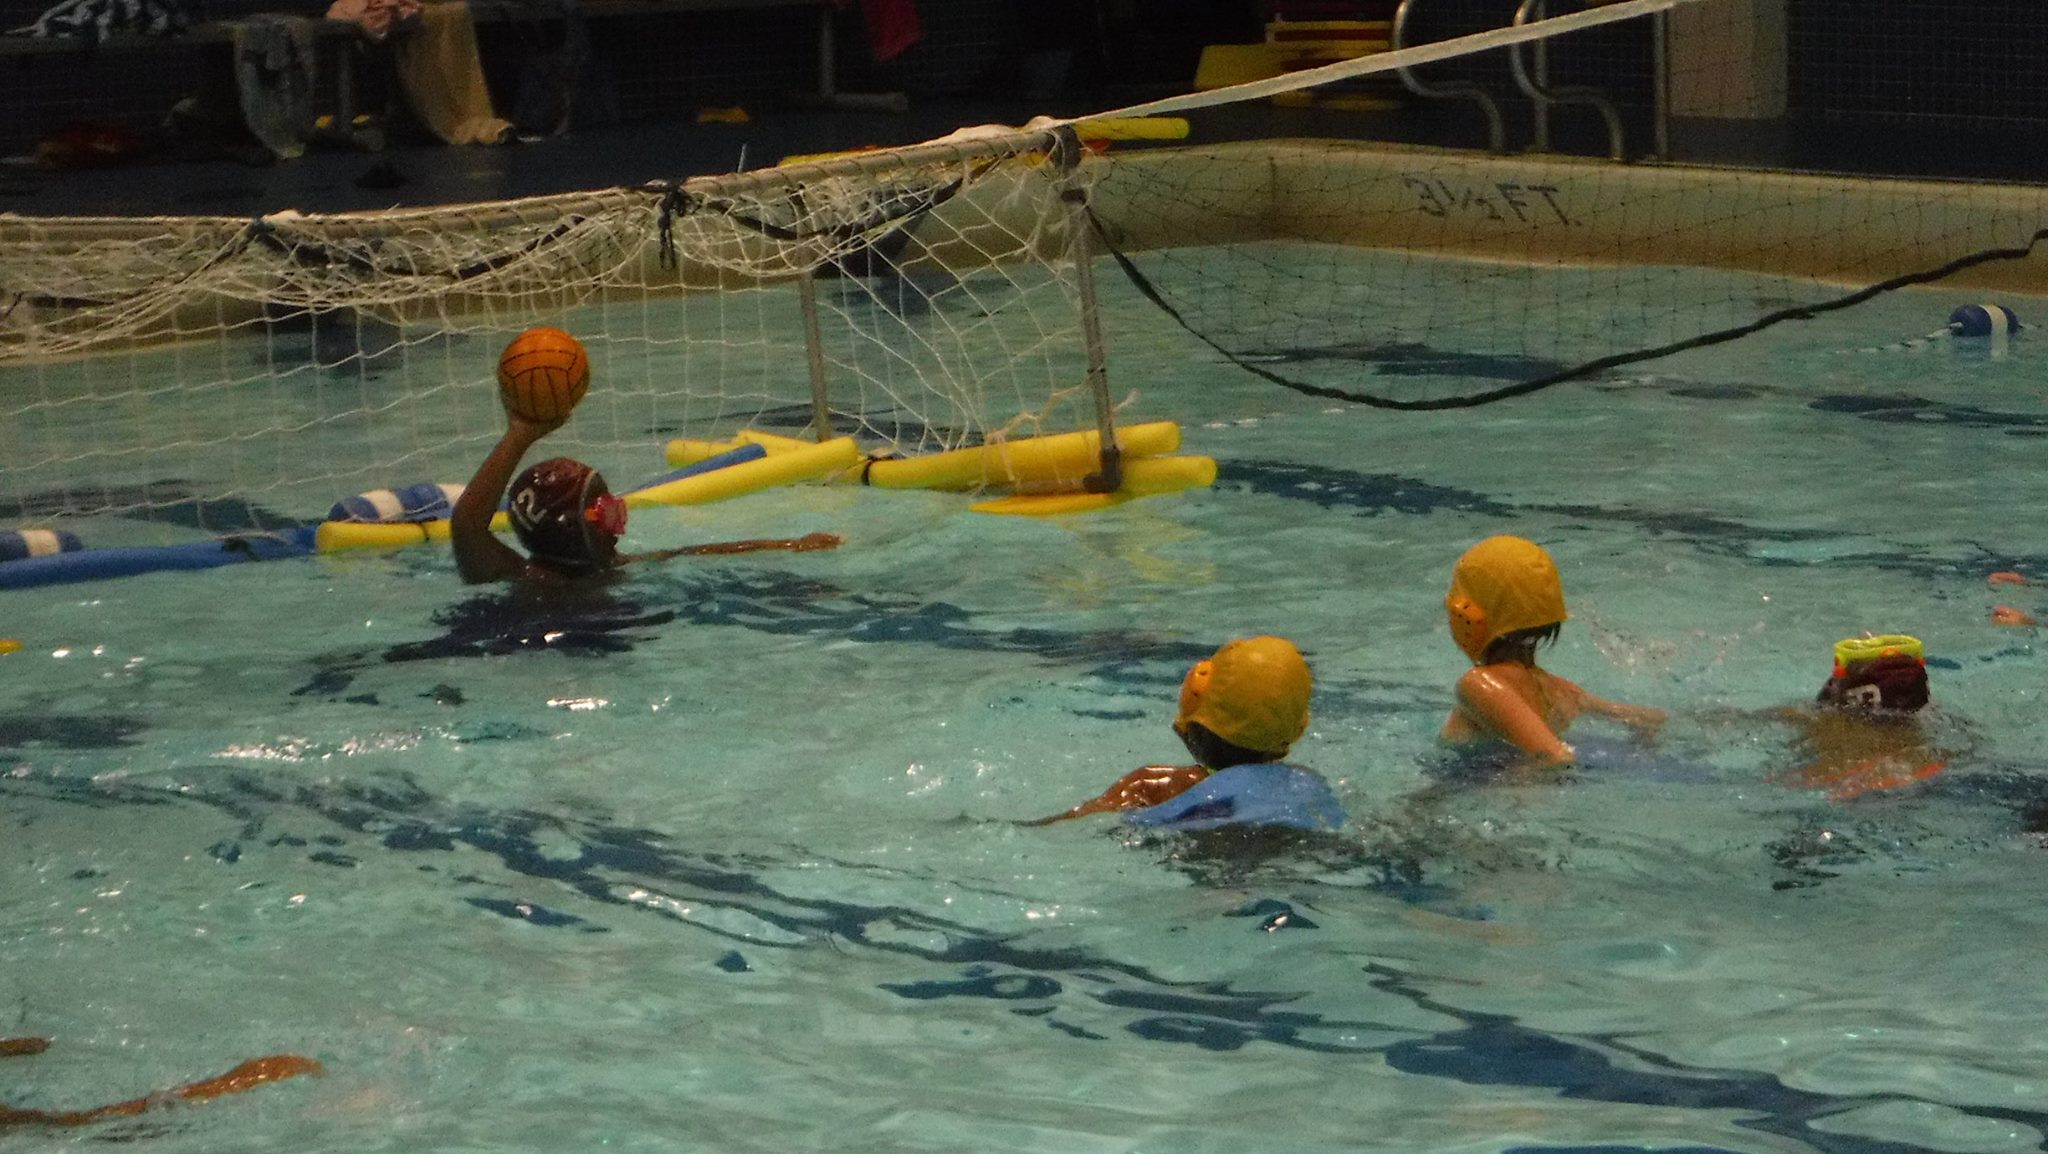 Noodles float water polo goals with rope